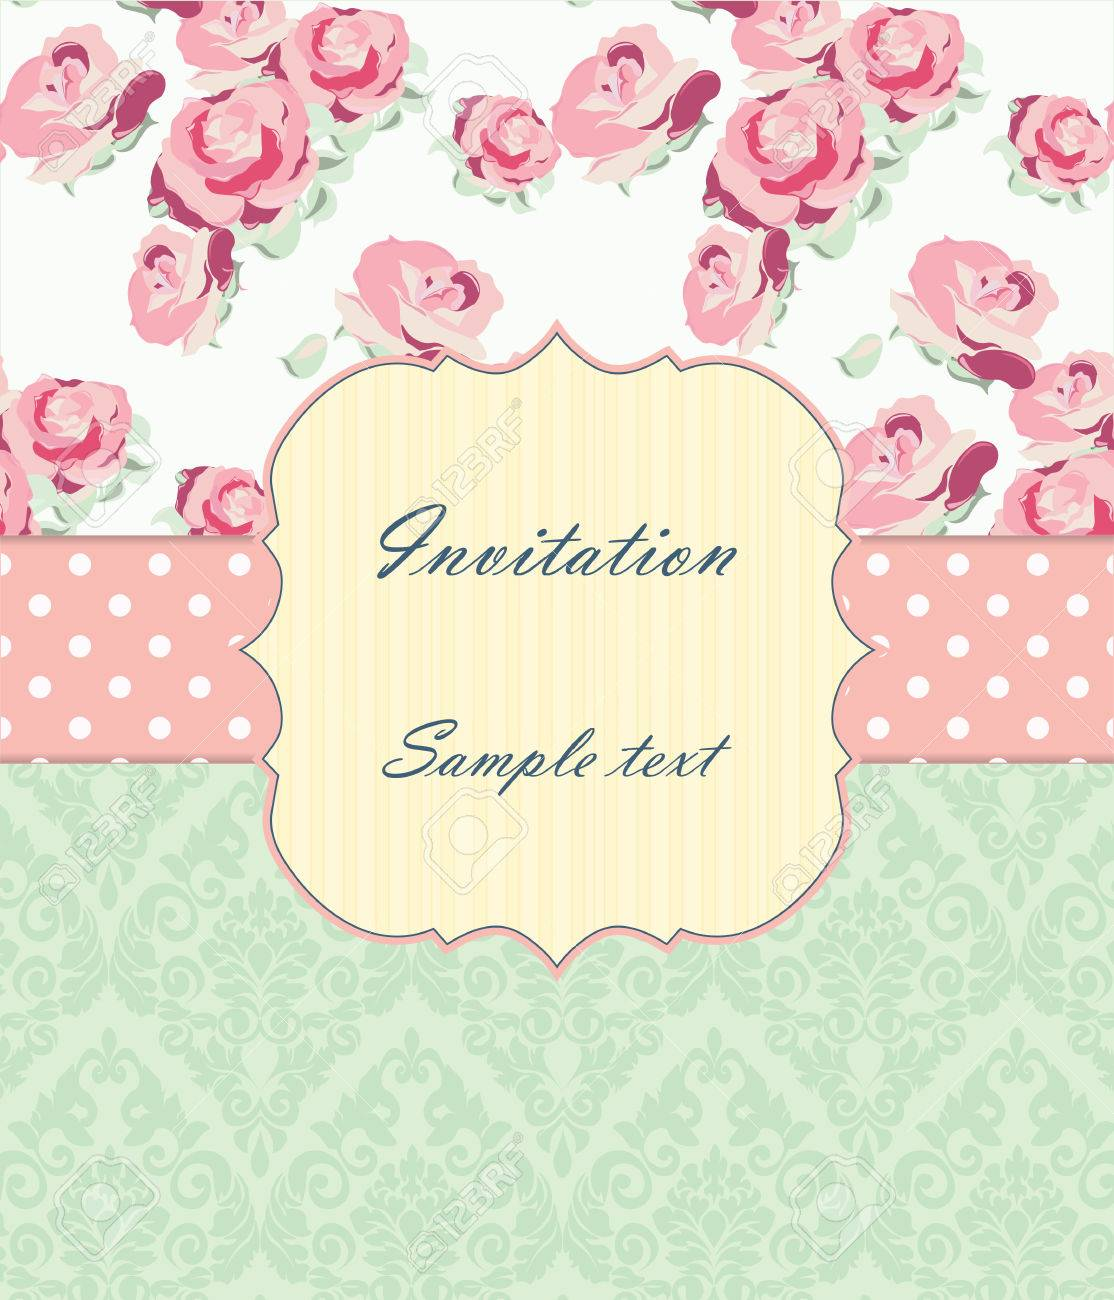 Wedding Invitation Card With Vintage Ornaments And Roses. Shabby ...